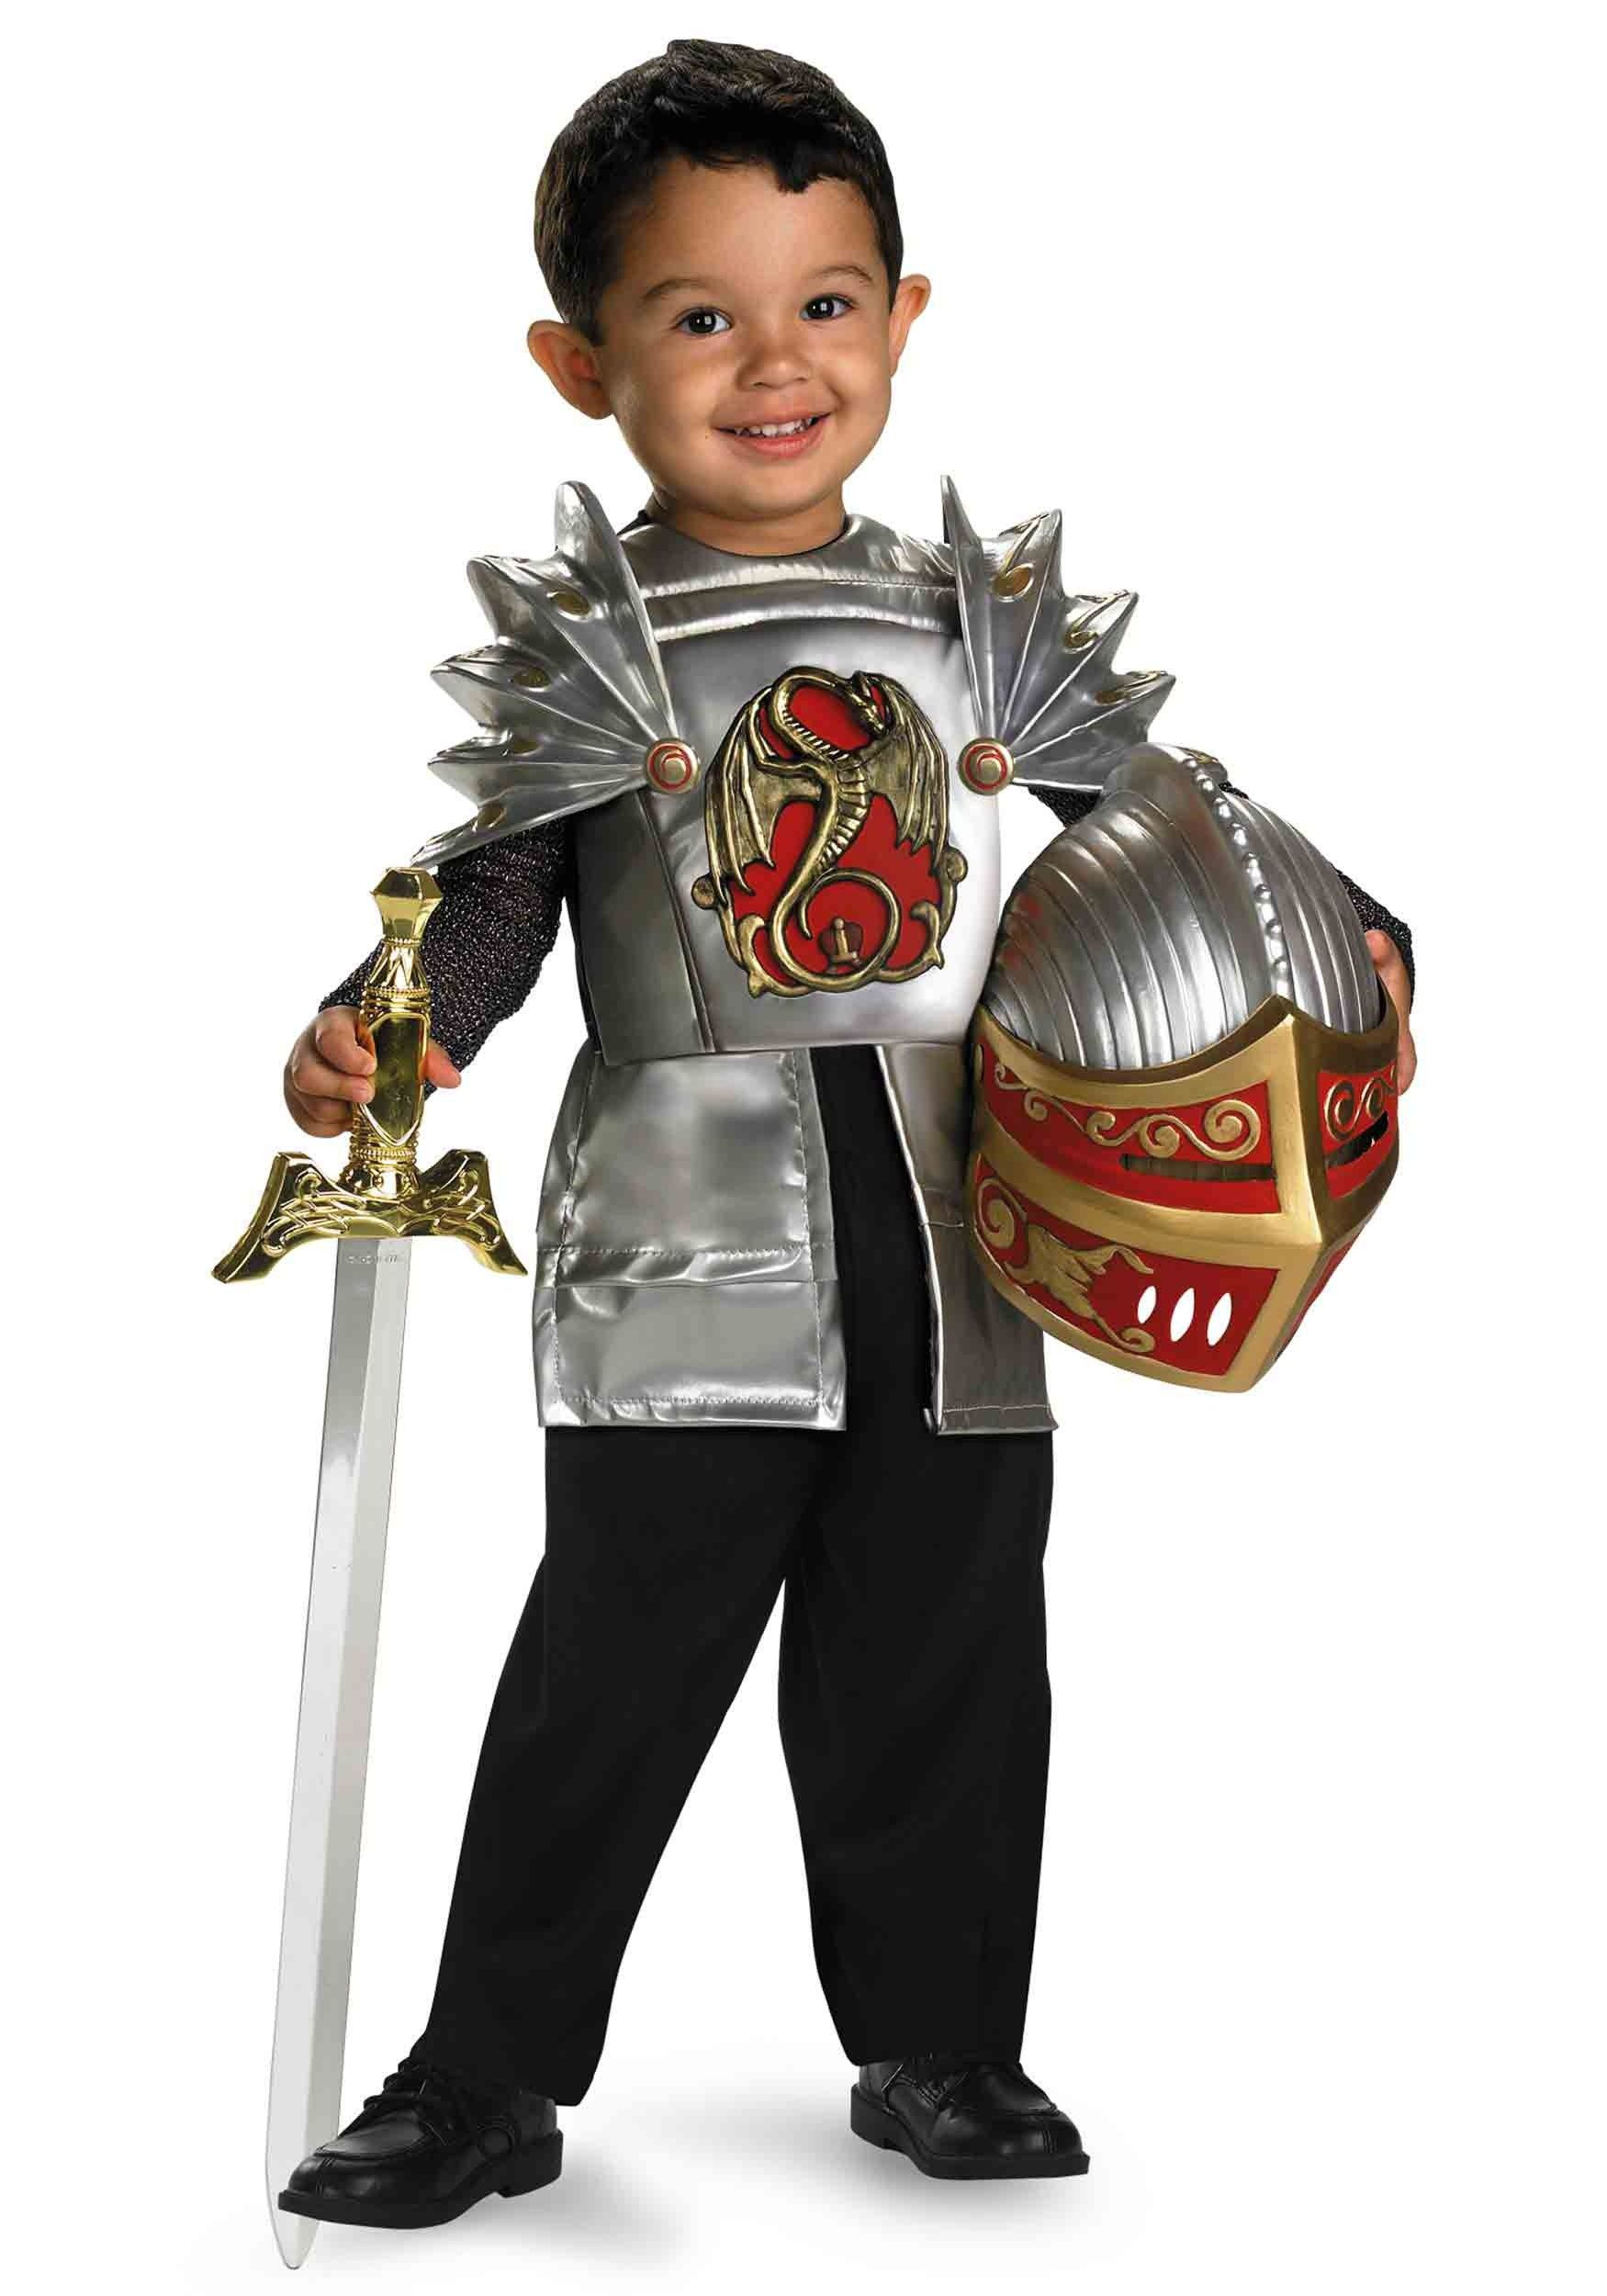 https://images.halloweencostumes/products/29537/1-1/toddler